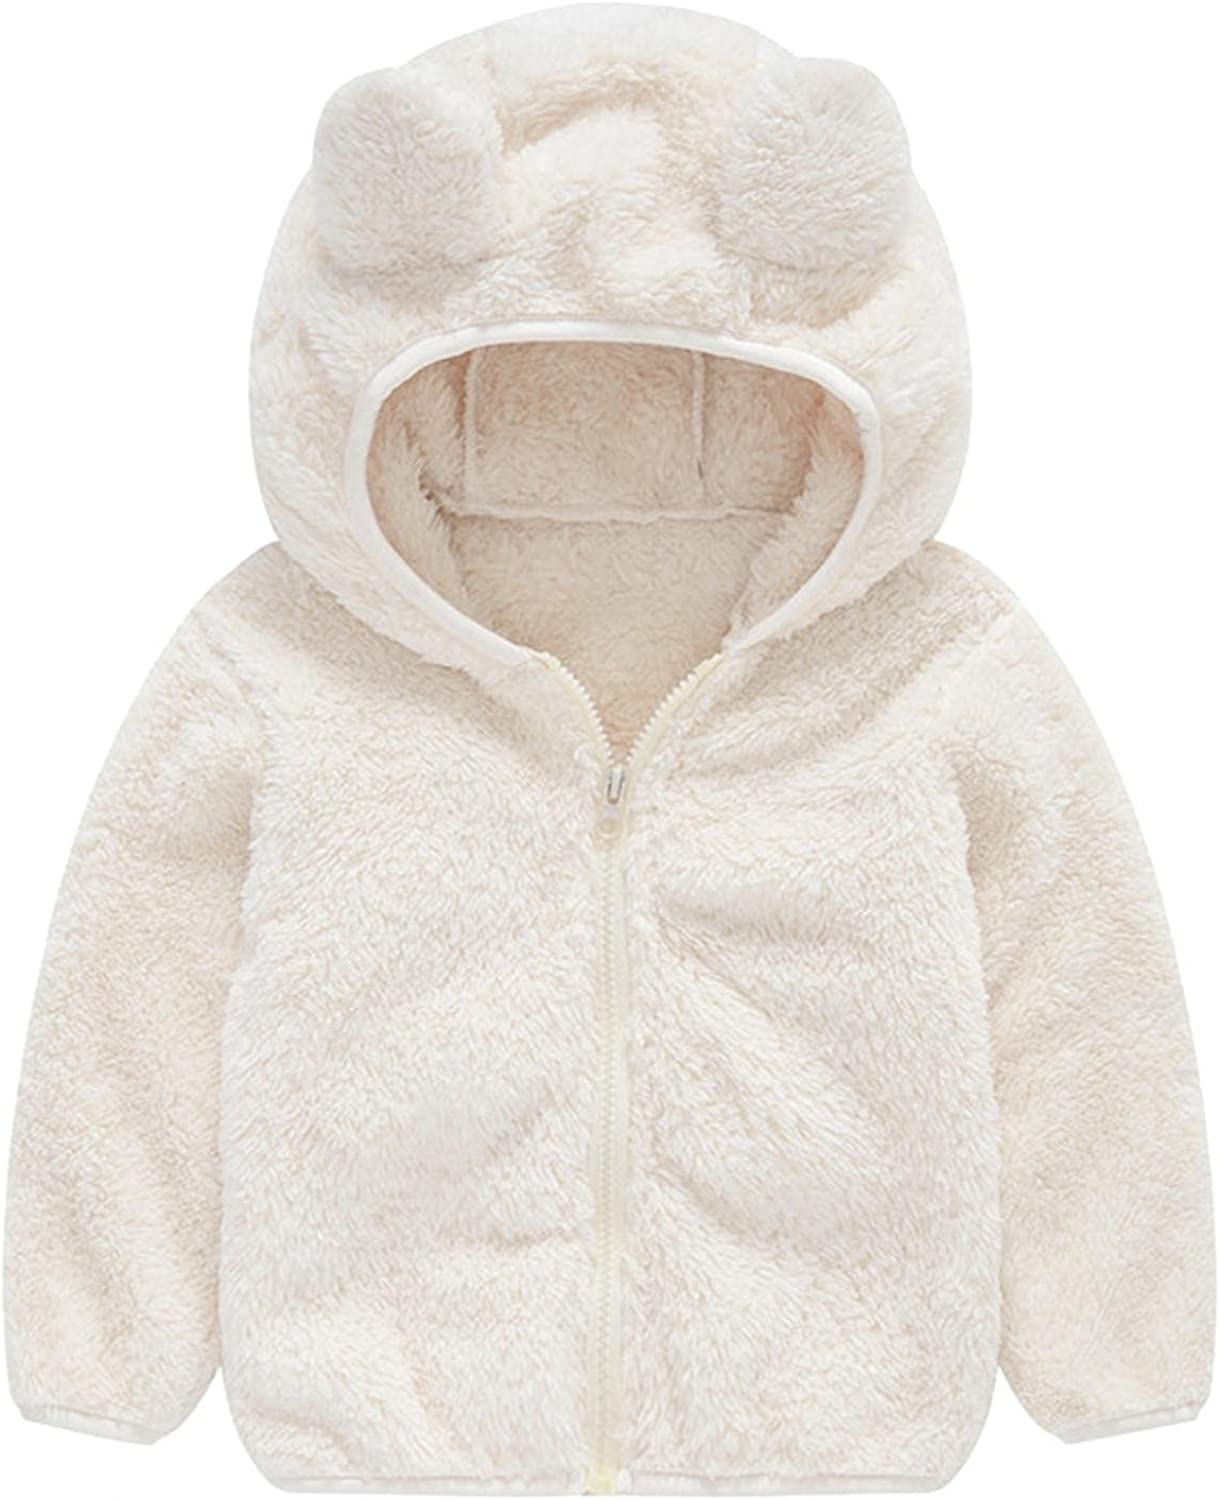 Toddler Hooded Jacket Girl Boy Warm Winter Sweatshirt Outwea sold out Top New products, world's highest quality popular!